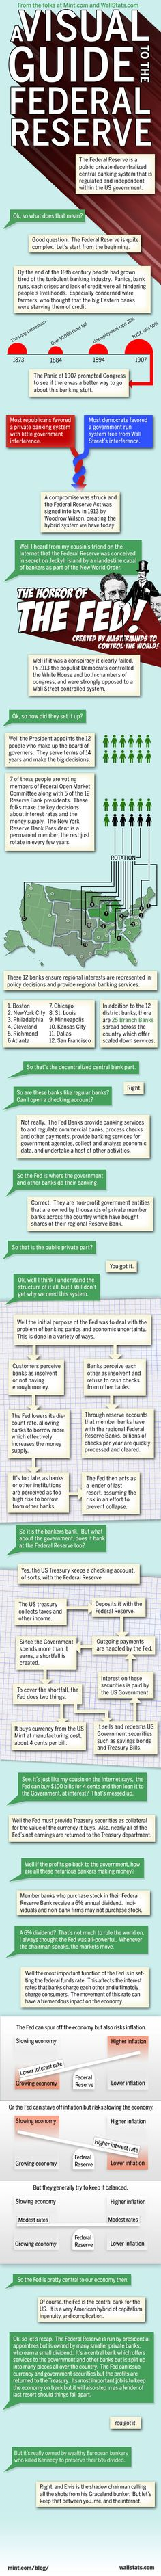 The Federal Reserve. That's where our federal government. The Federal Reserve is extraordinarily complex once you s Teaching Economics, Teaching Government, Economics Lessons, Blockchain, Federal Reserve System, Finance, Leadership, History Class, Financial Literacy